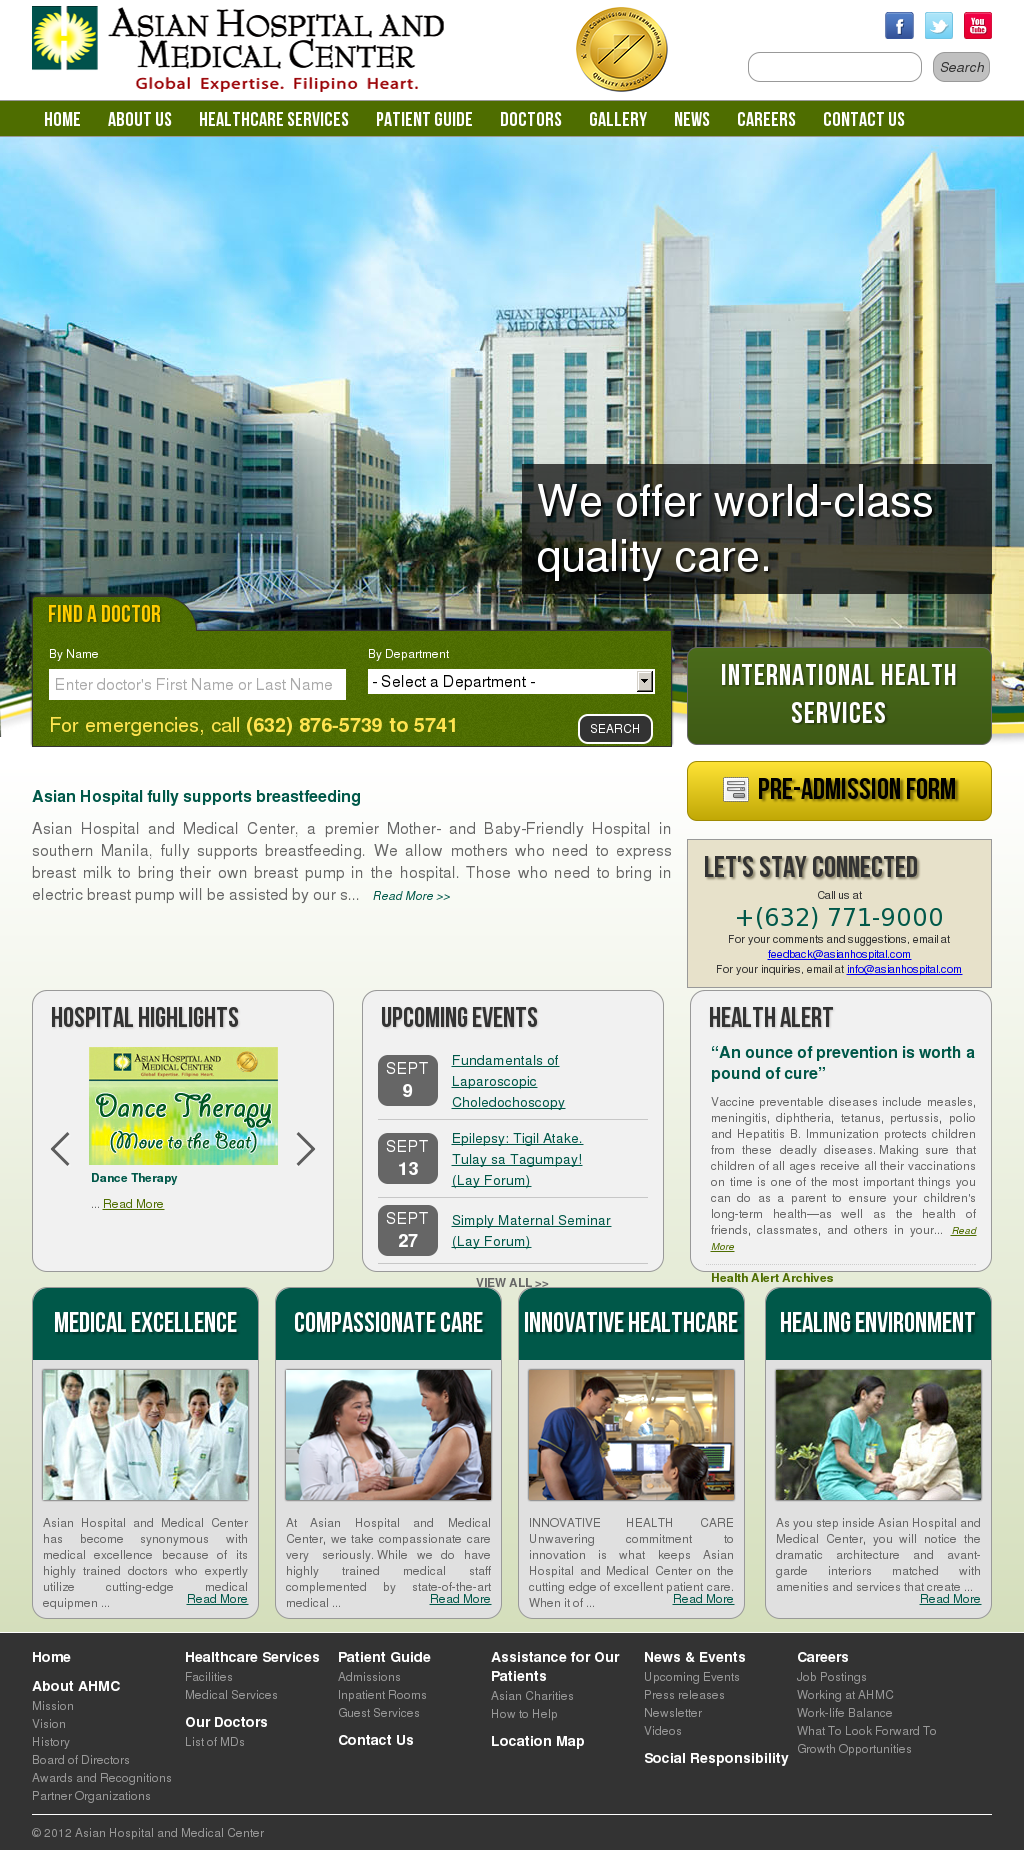 Asian Hospital Competitors, Revenue and Employees - Owler Company Profile